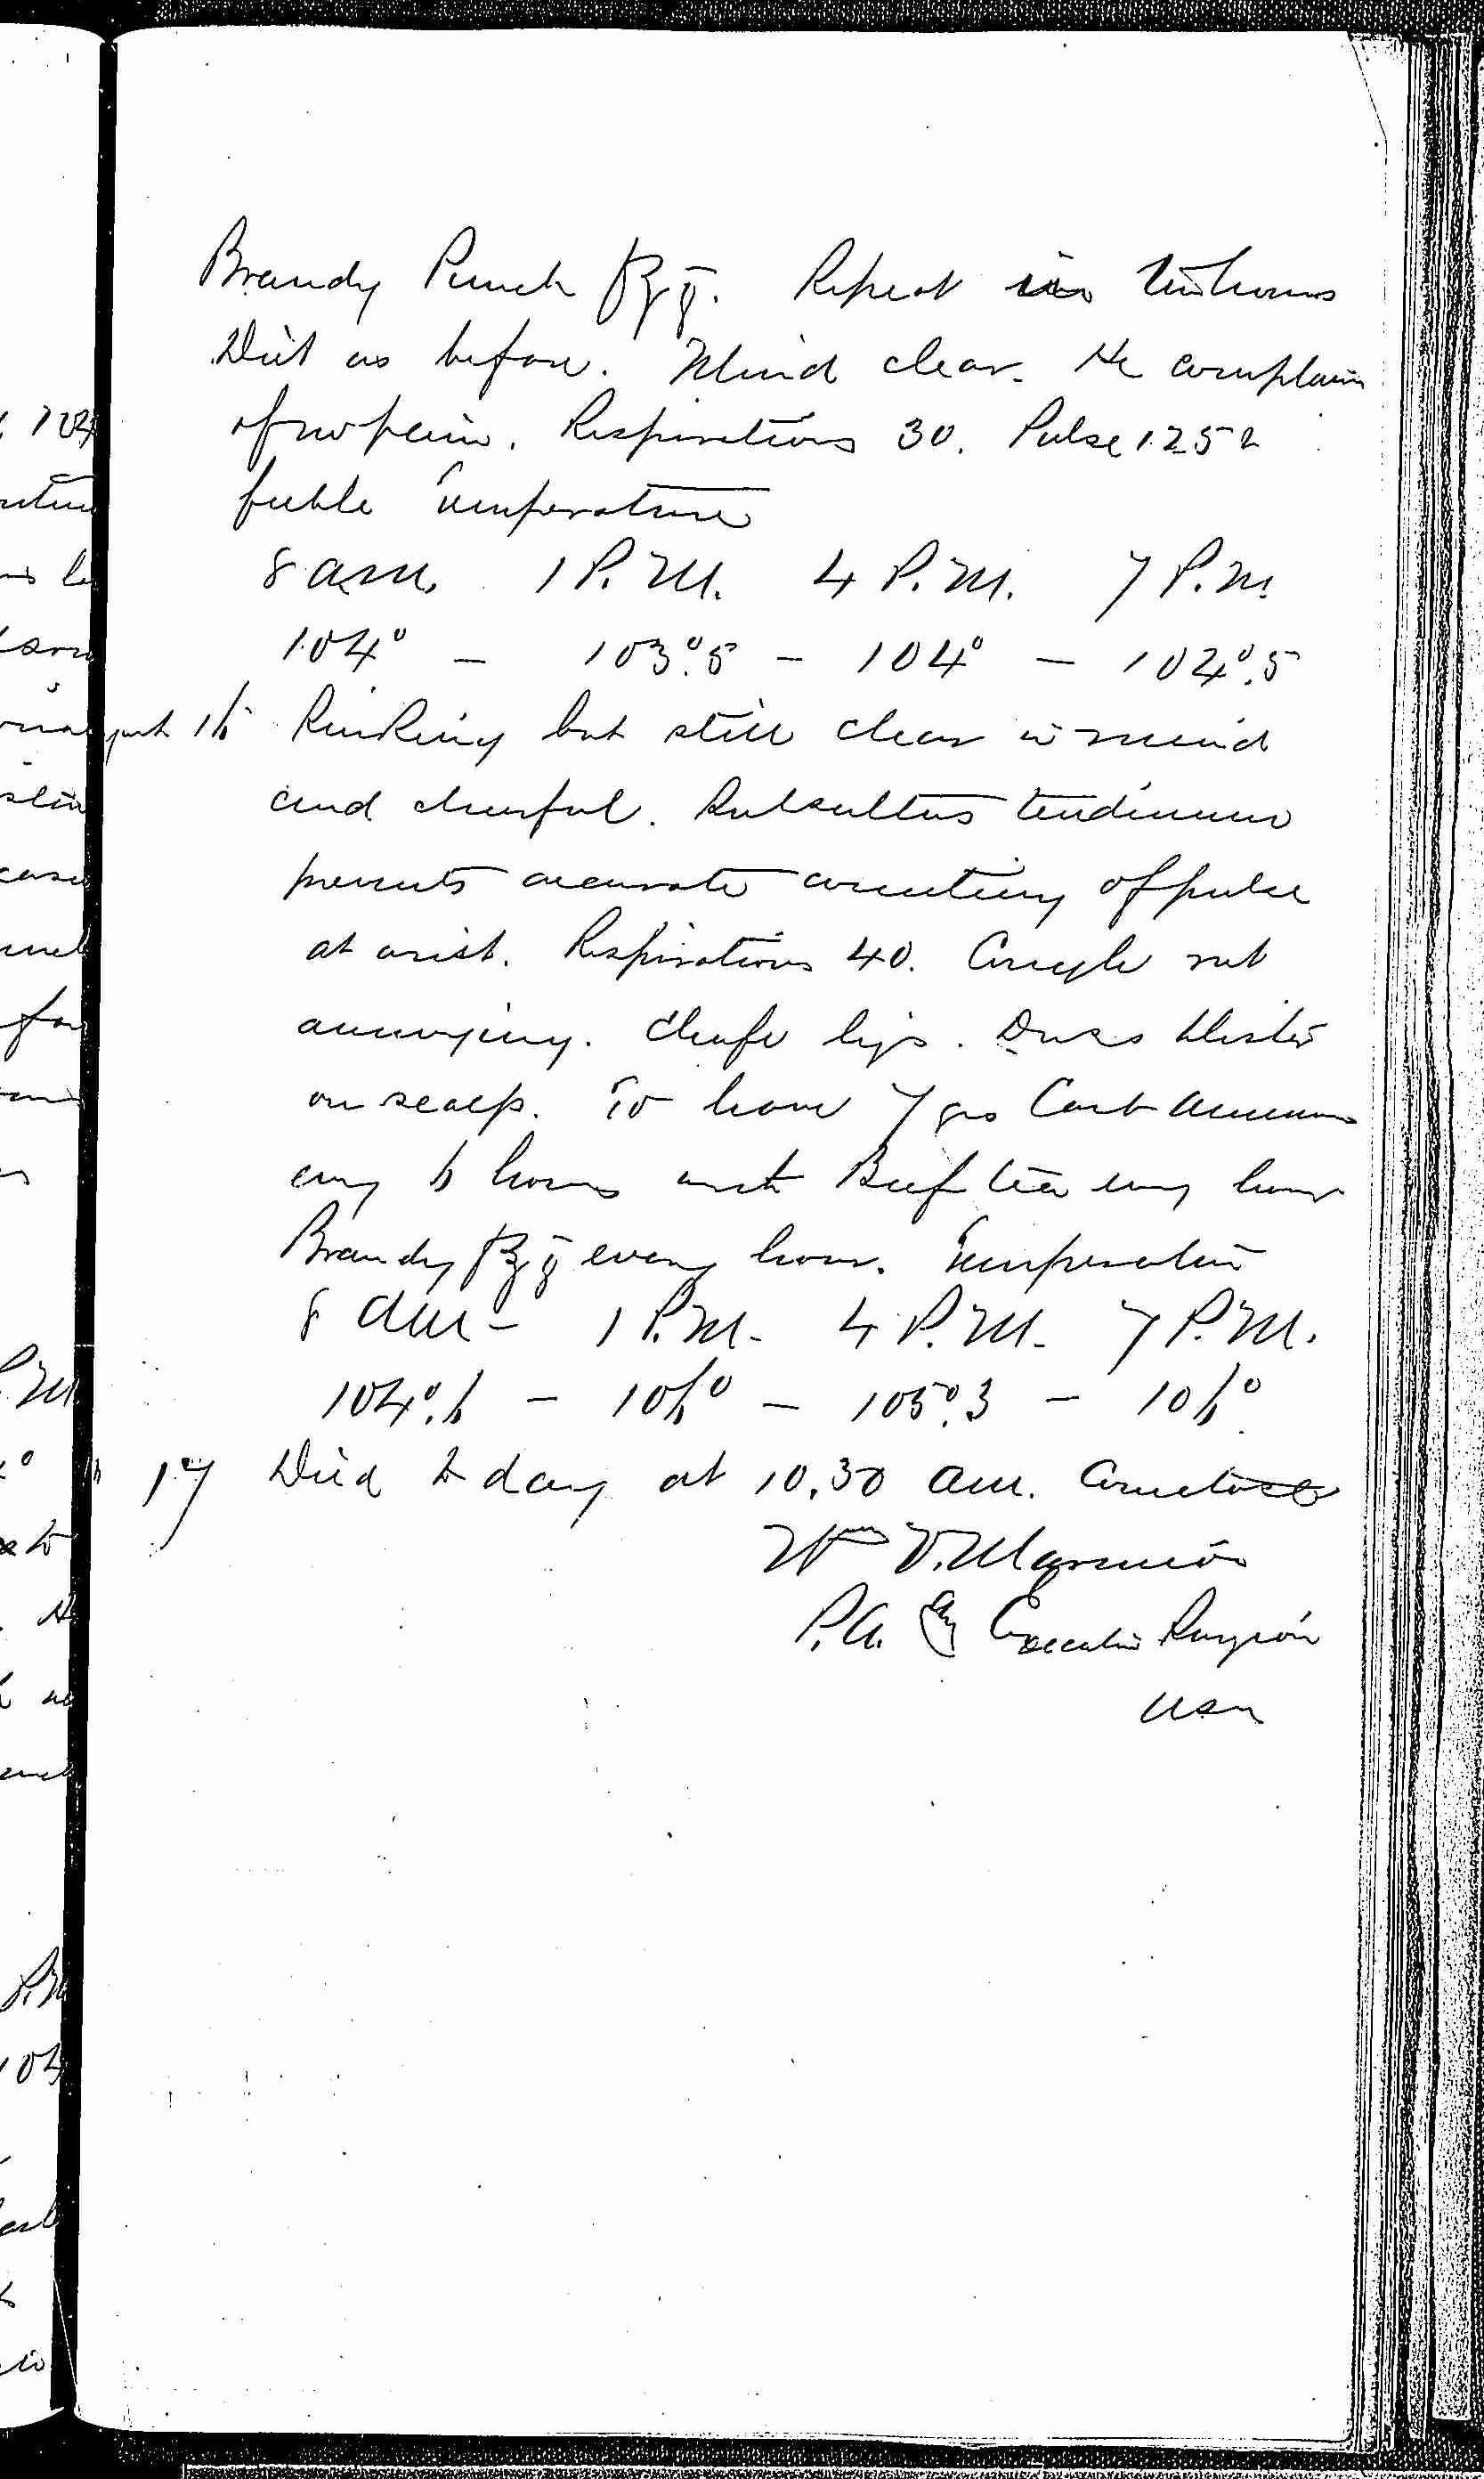 Entry for William Hack (page 7 of 7) in the log Hospital Tickets and Case Papers - Naval Hospital - Washington, D.C. - 1868-69